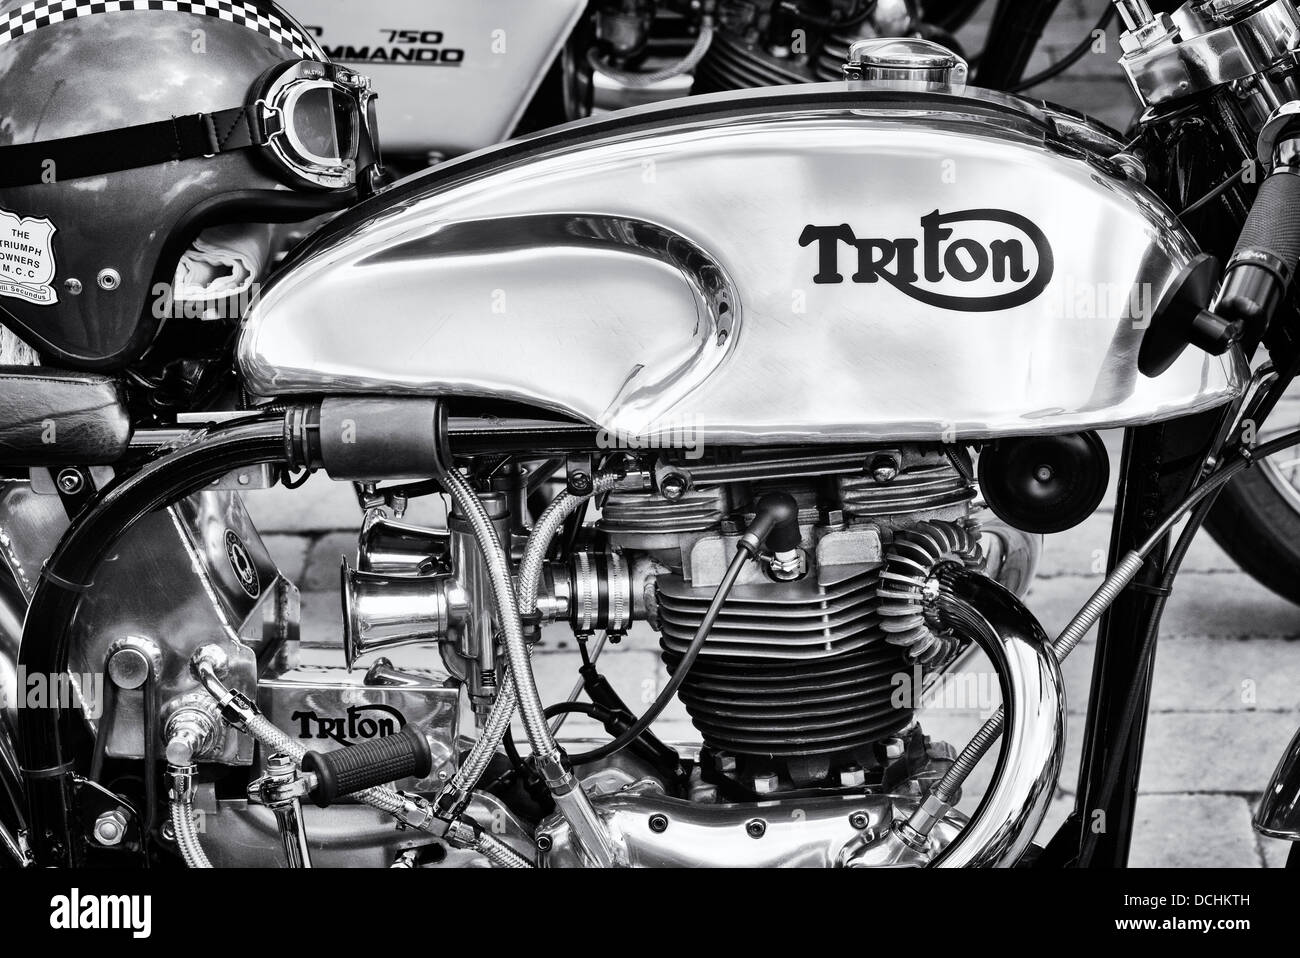 Triton Motorcycle For Sale Uk